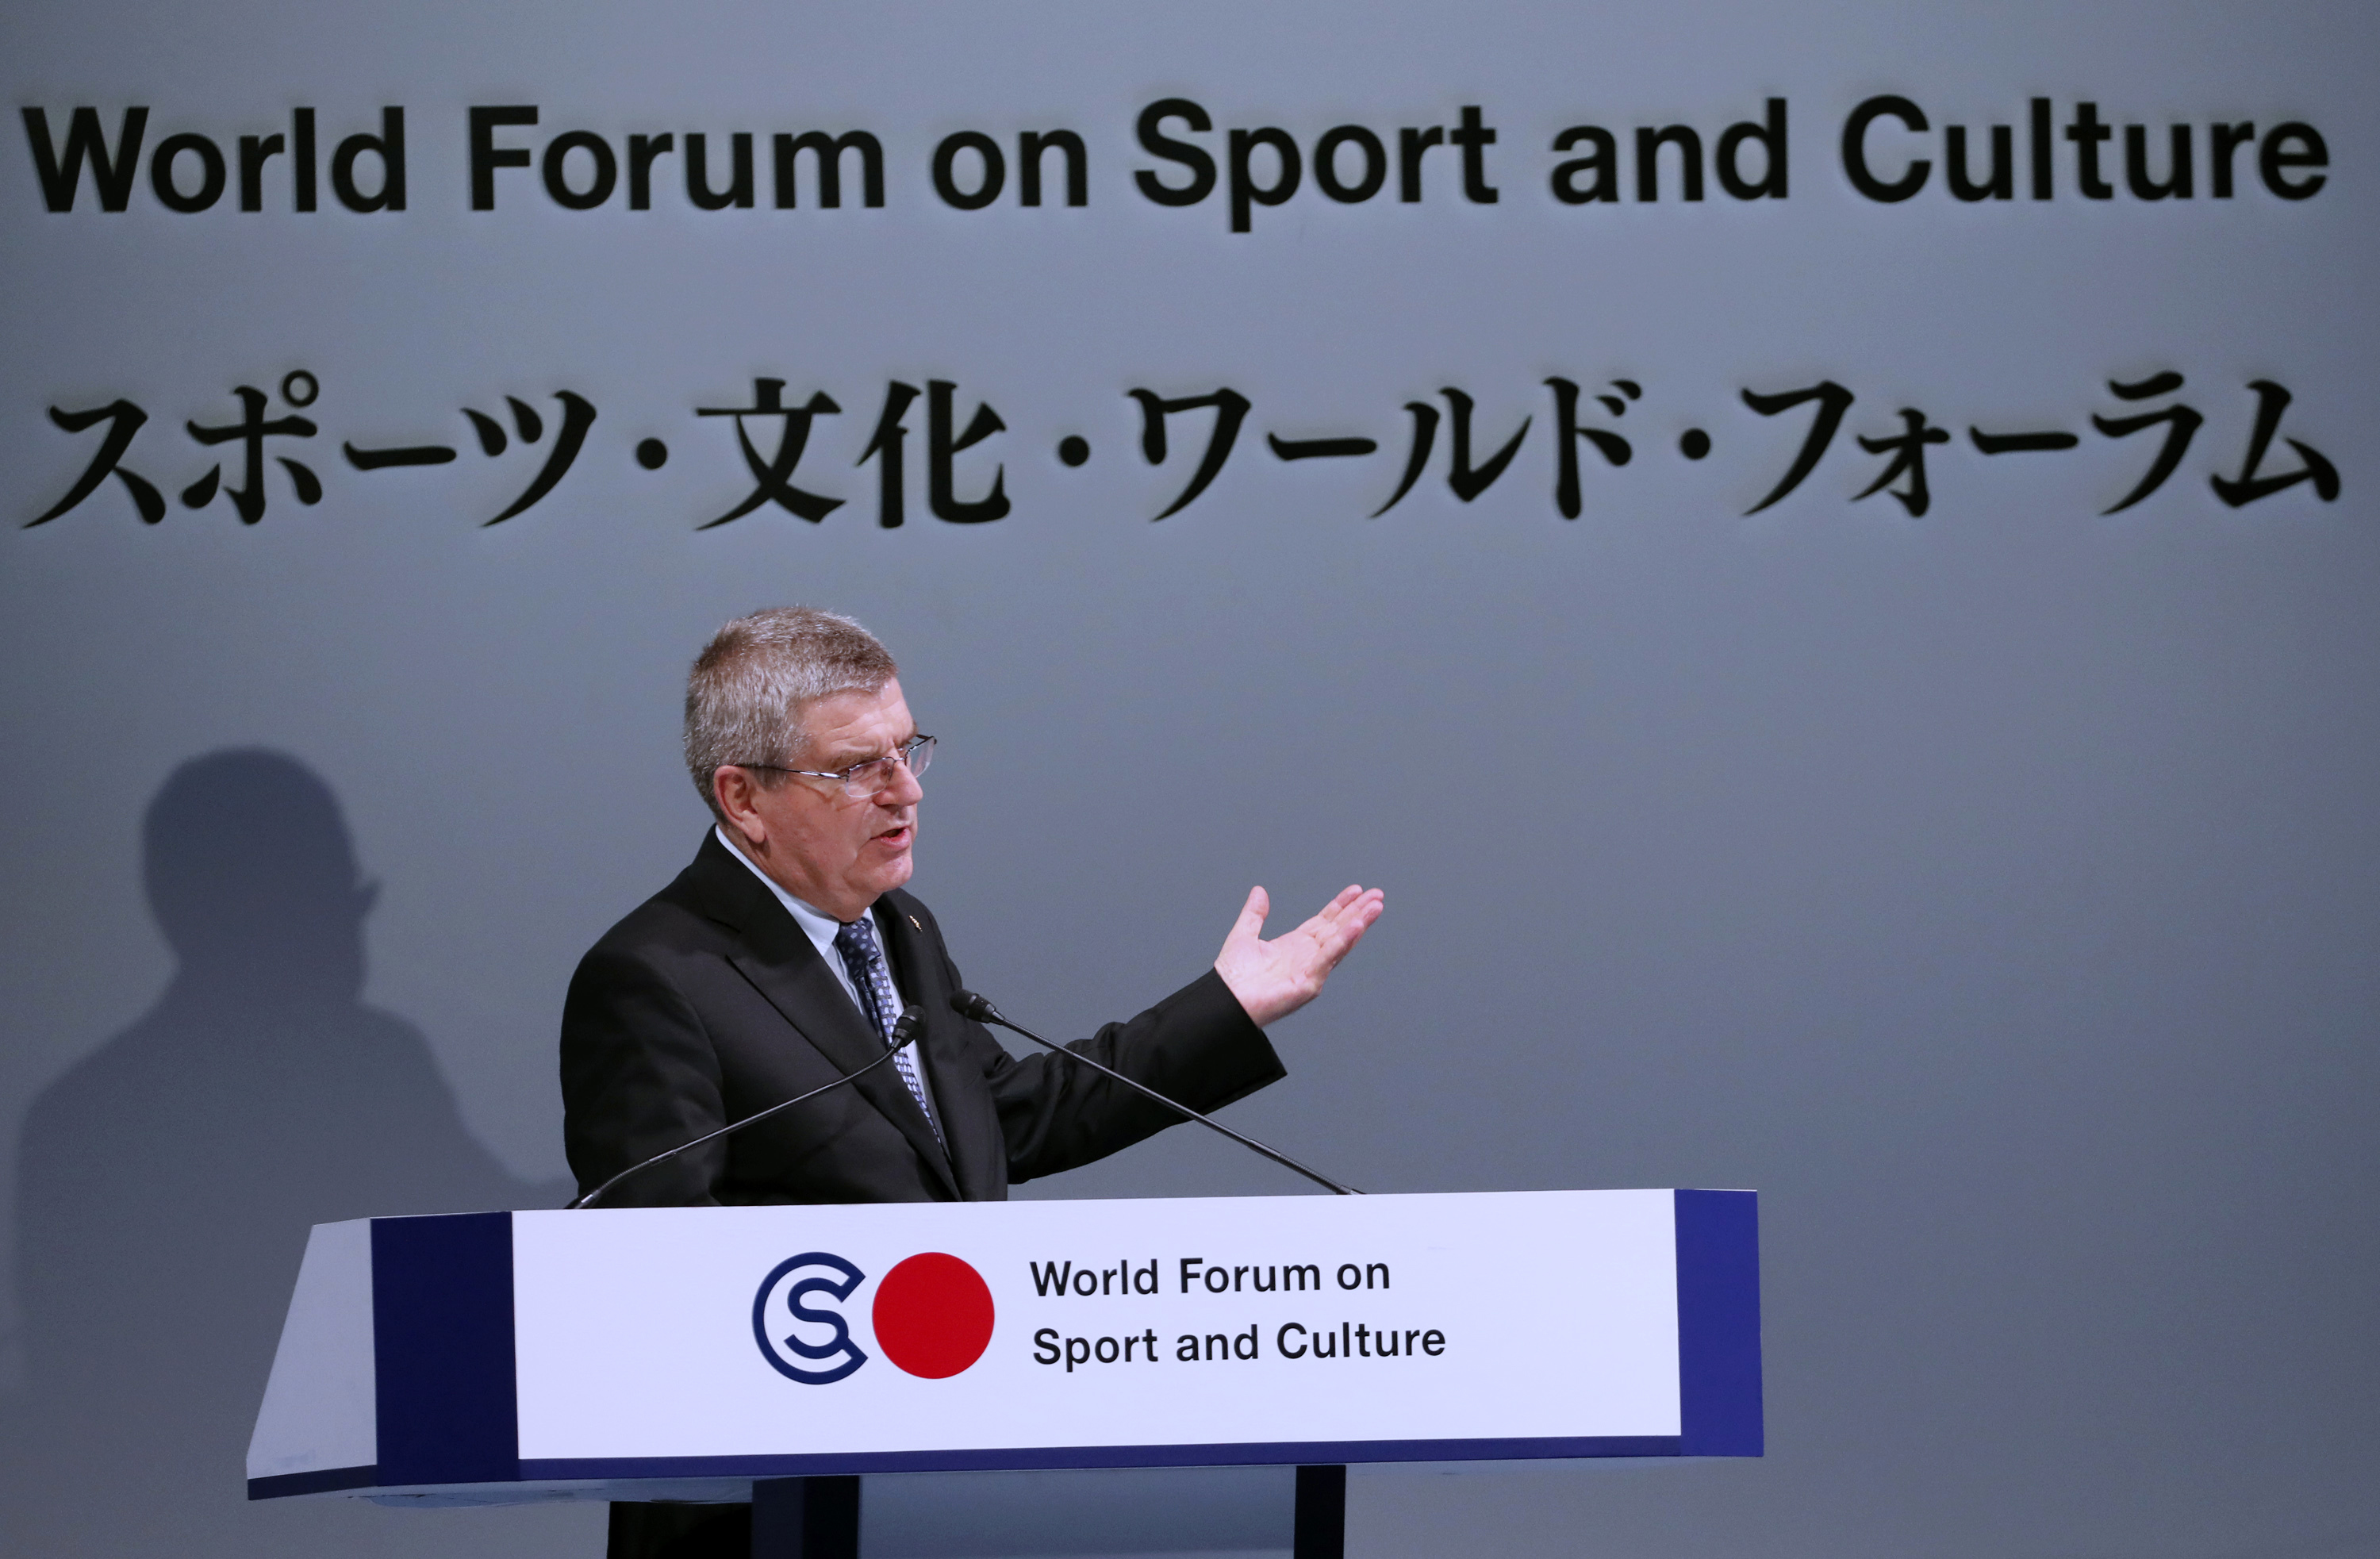 International Olympic Committee President Thomas Bach delivers a speech at World Forum on Sports and Culture in Tokyo, Thursday, Oct. 20, 2016. Bach is in Japan amid tension between Olympic organizers and Tokyo Governor Yuriko Koike, who is pushing to cut